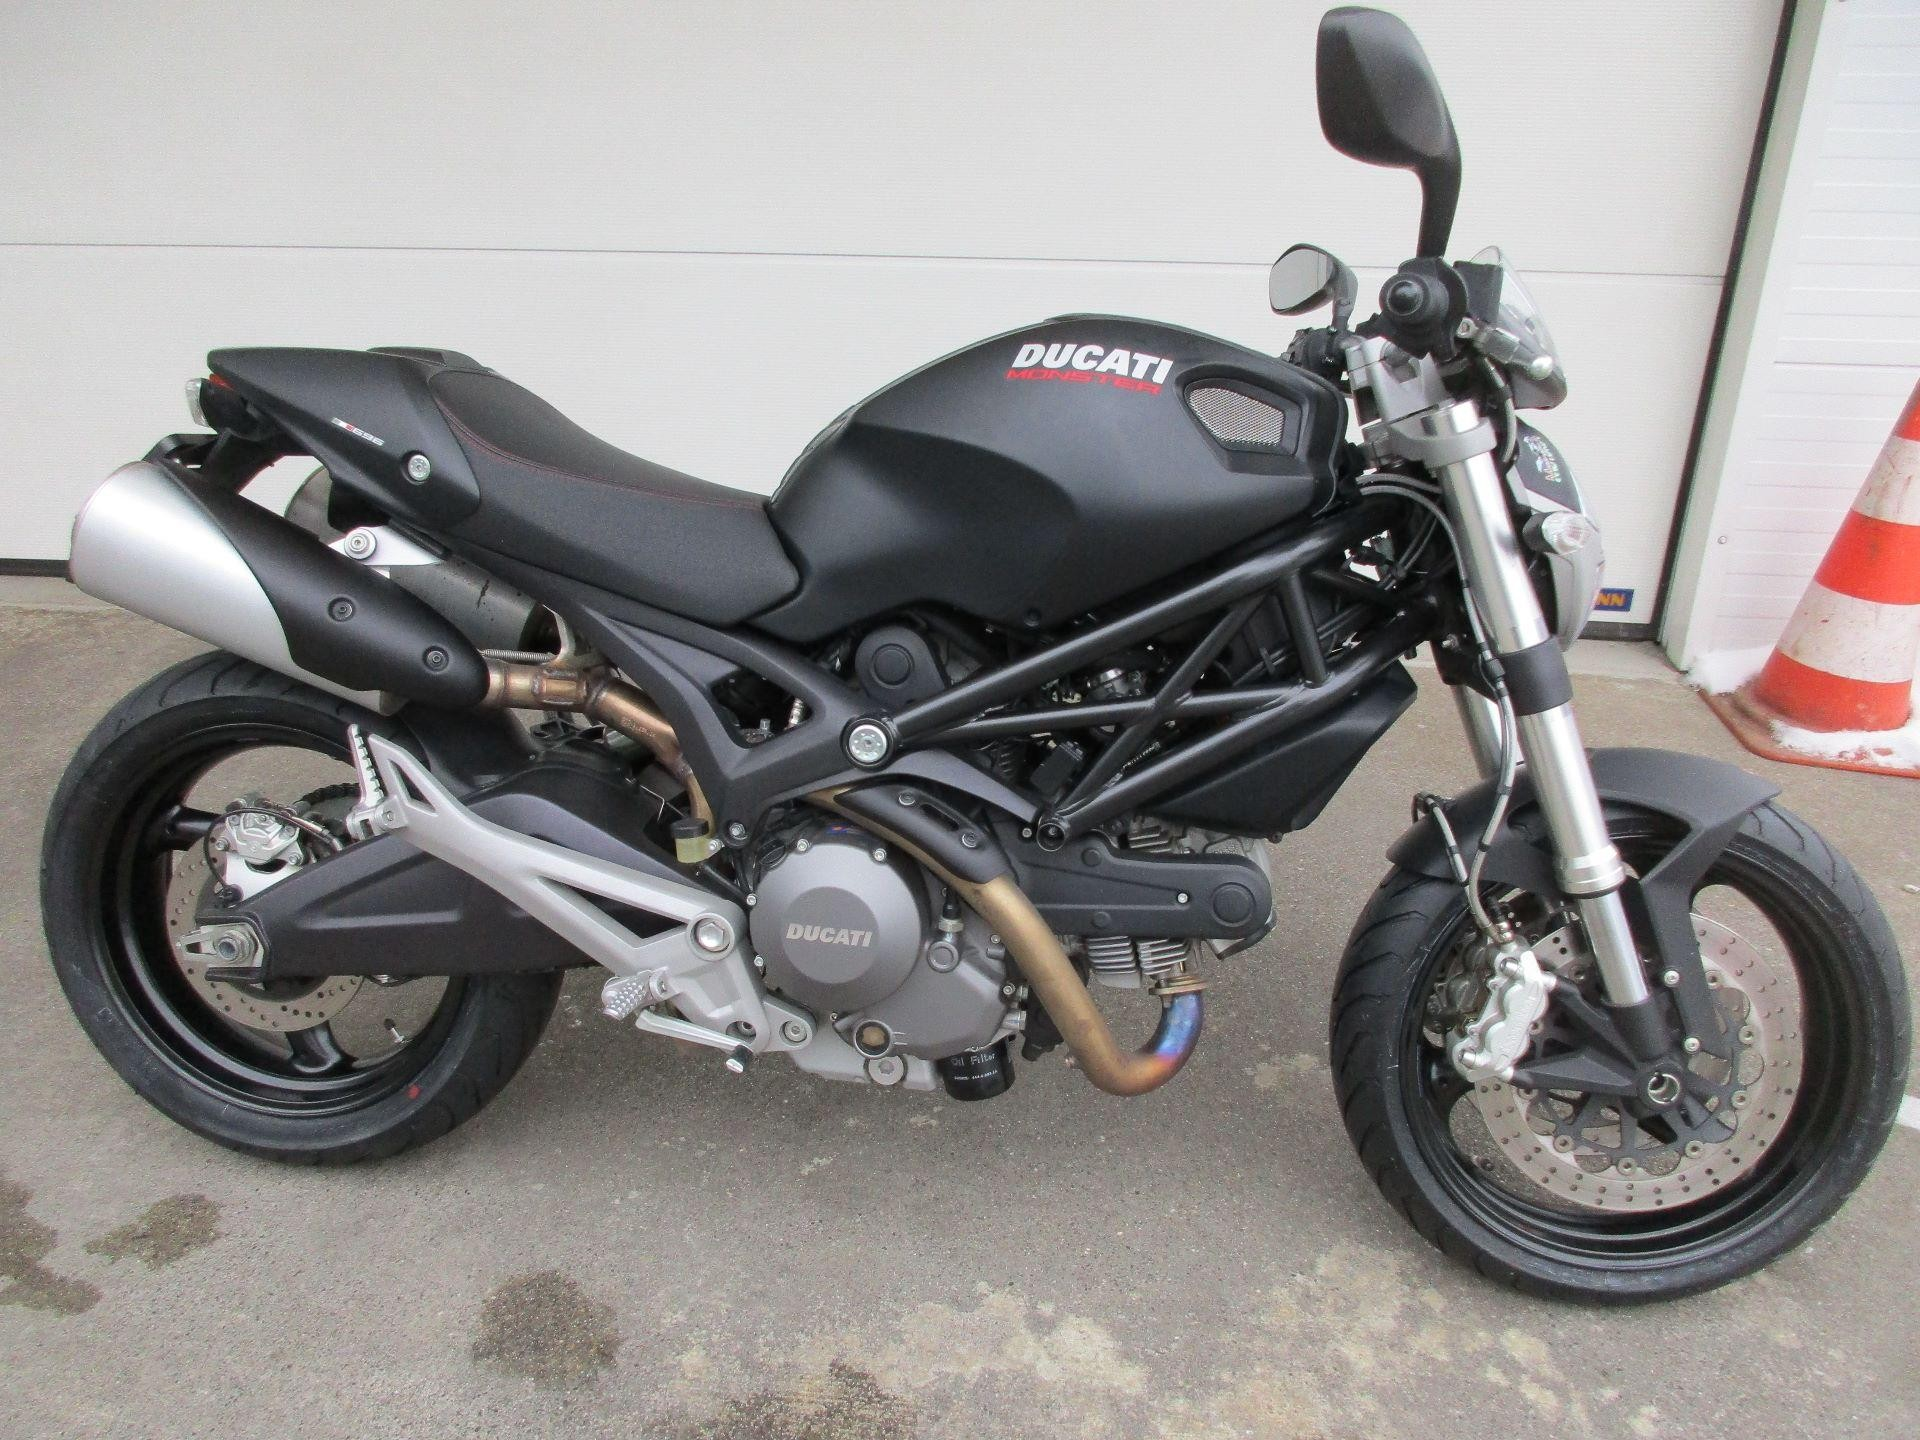 ducati 696 monster 23kw abs motoria gmbh wohlen occasion. Black Bedroom Furniture Sets. Home Design Ideas